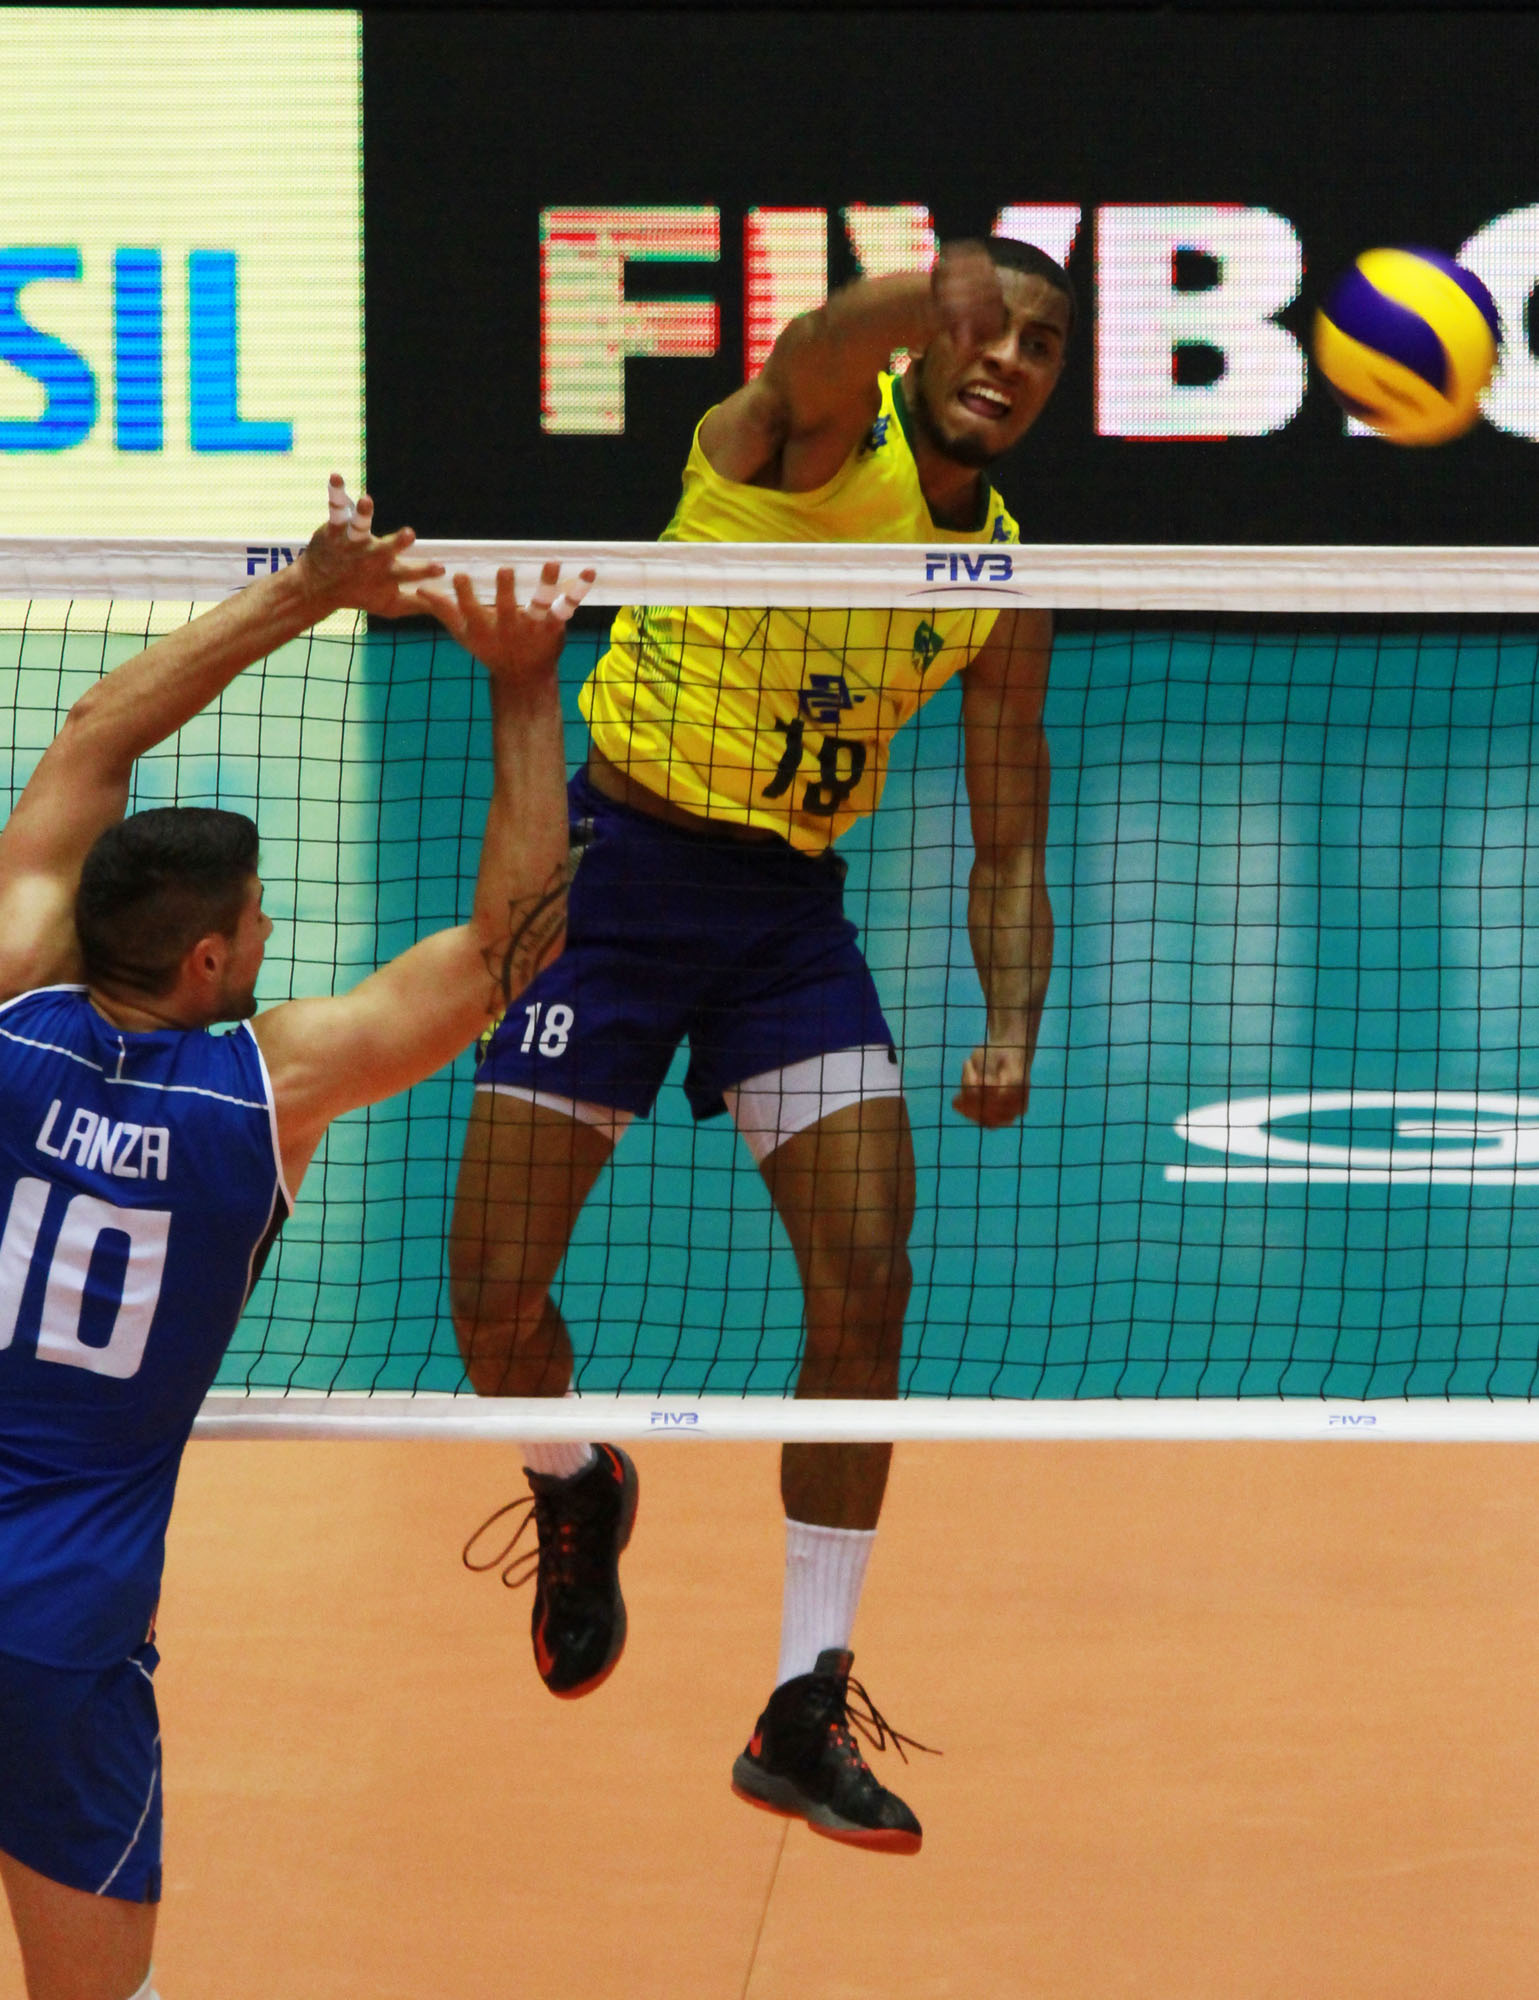 http://www.fivb.org/Vis2009/Images/GetImage.asmx?No=201489987&maxSize=960